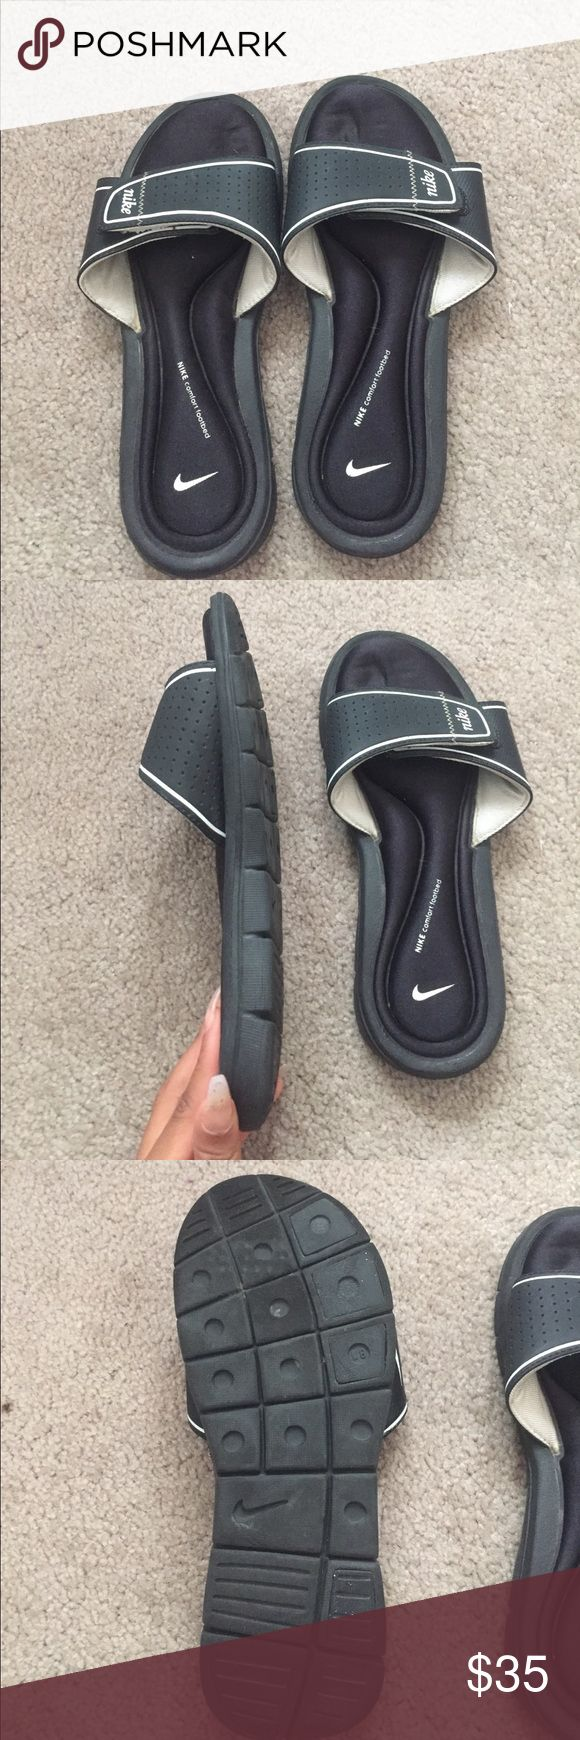 BLACK AND WHITE NIKE SLIDES BLACK AND WHITE NIKE SLIDES (very comfortable)!!!! 😍😍👑😍👑 ACCEPTING OFFERS Nike Shoes Slippers